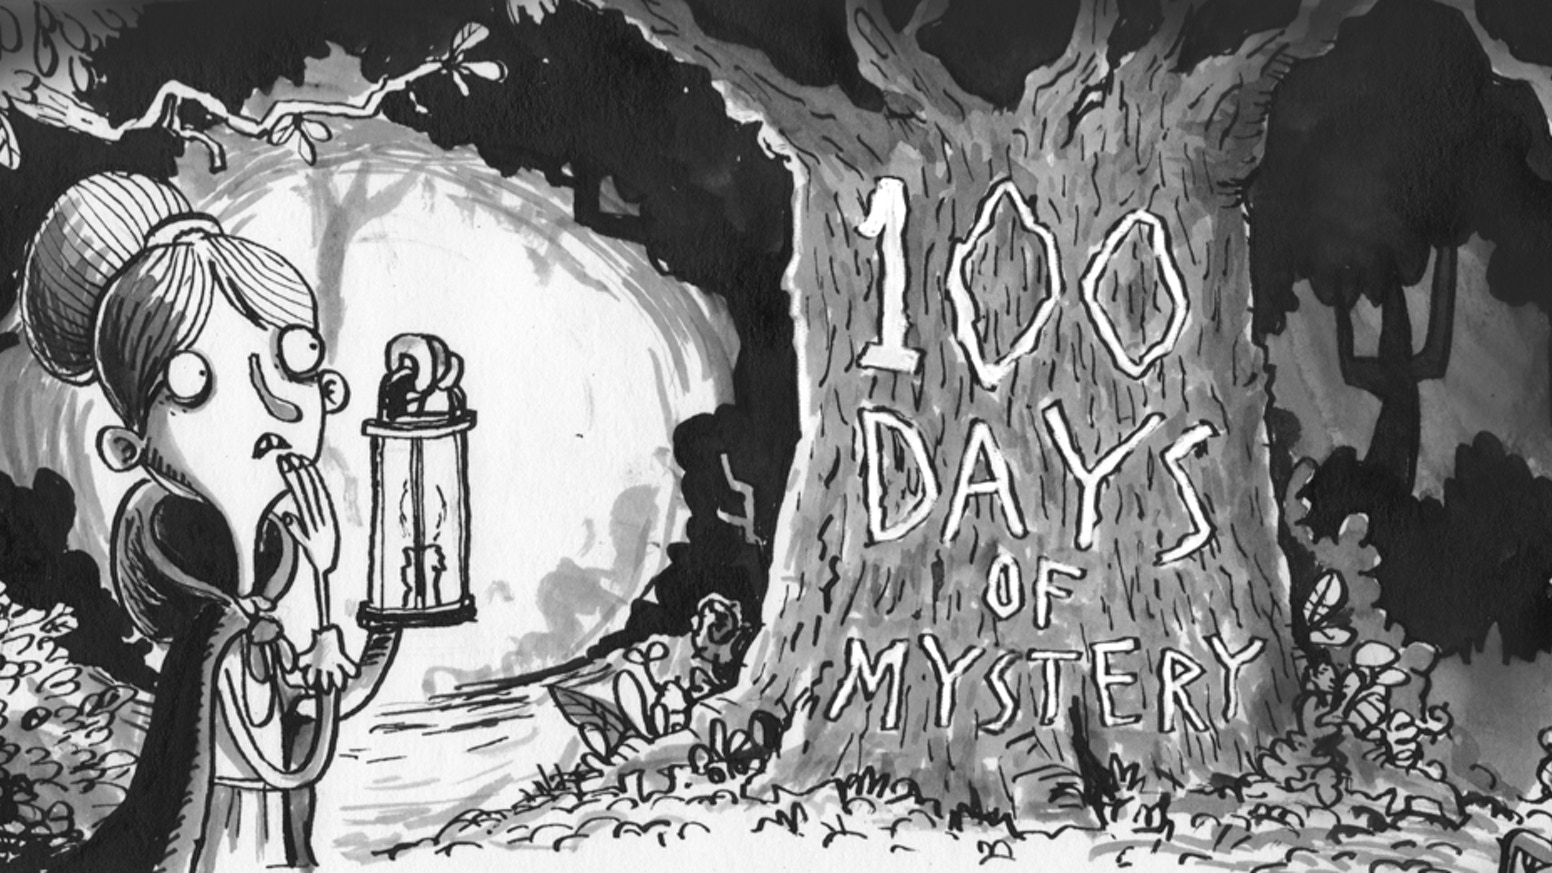 Every day for 100 days I will illustrate a scene from the world of Bertram Fiddle and then combine them in a book.